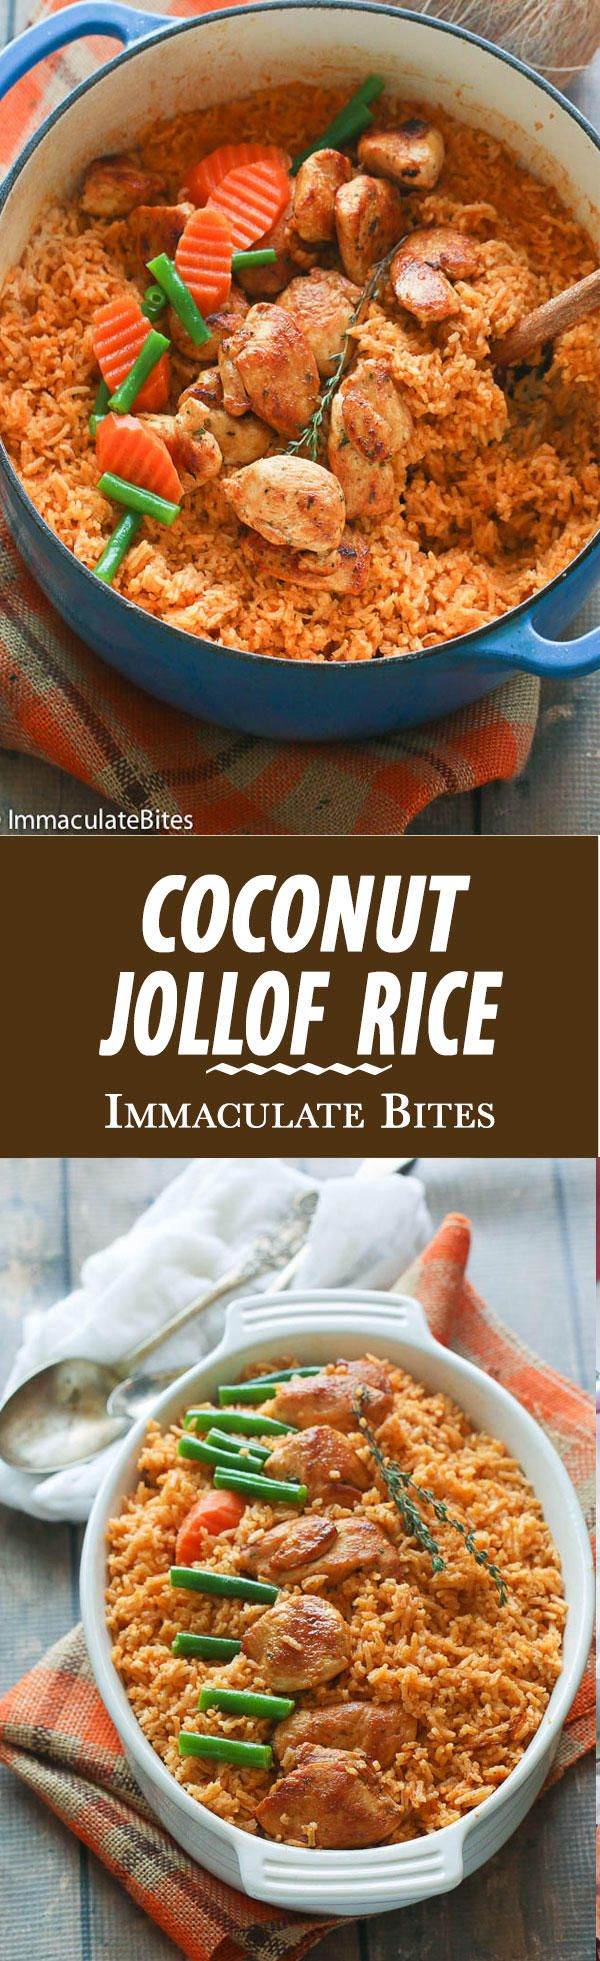 Coconut Jollof Rice - A Super Popular African Mea aromatic one pot  Chicken & Rice cooked slowing cooked with coconut milk . Easy, Flavorful and Delicious.